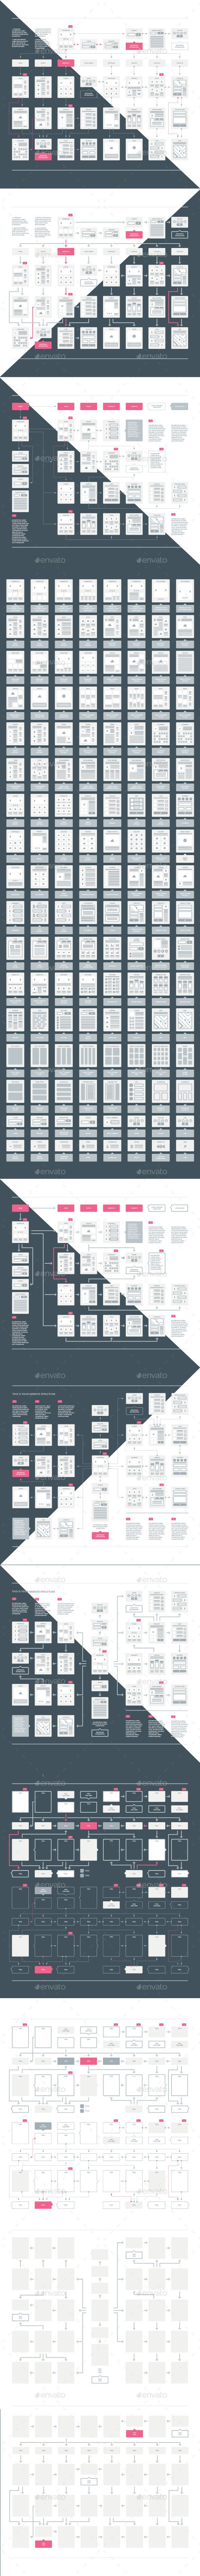 Web Sitemap Userflow & UX Kit Template Vector AI Illustrator. Download here: http://graphicriver.net/item/web-sitemap-userflow-ux-kit/15205547?ref=ksioks